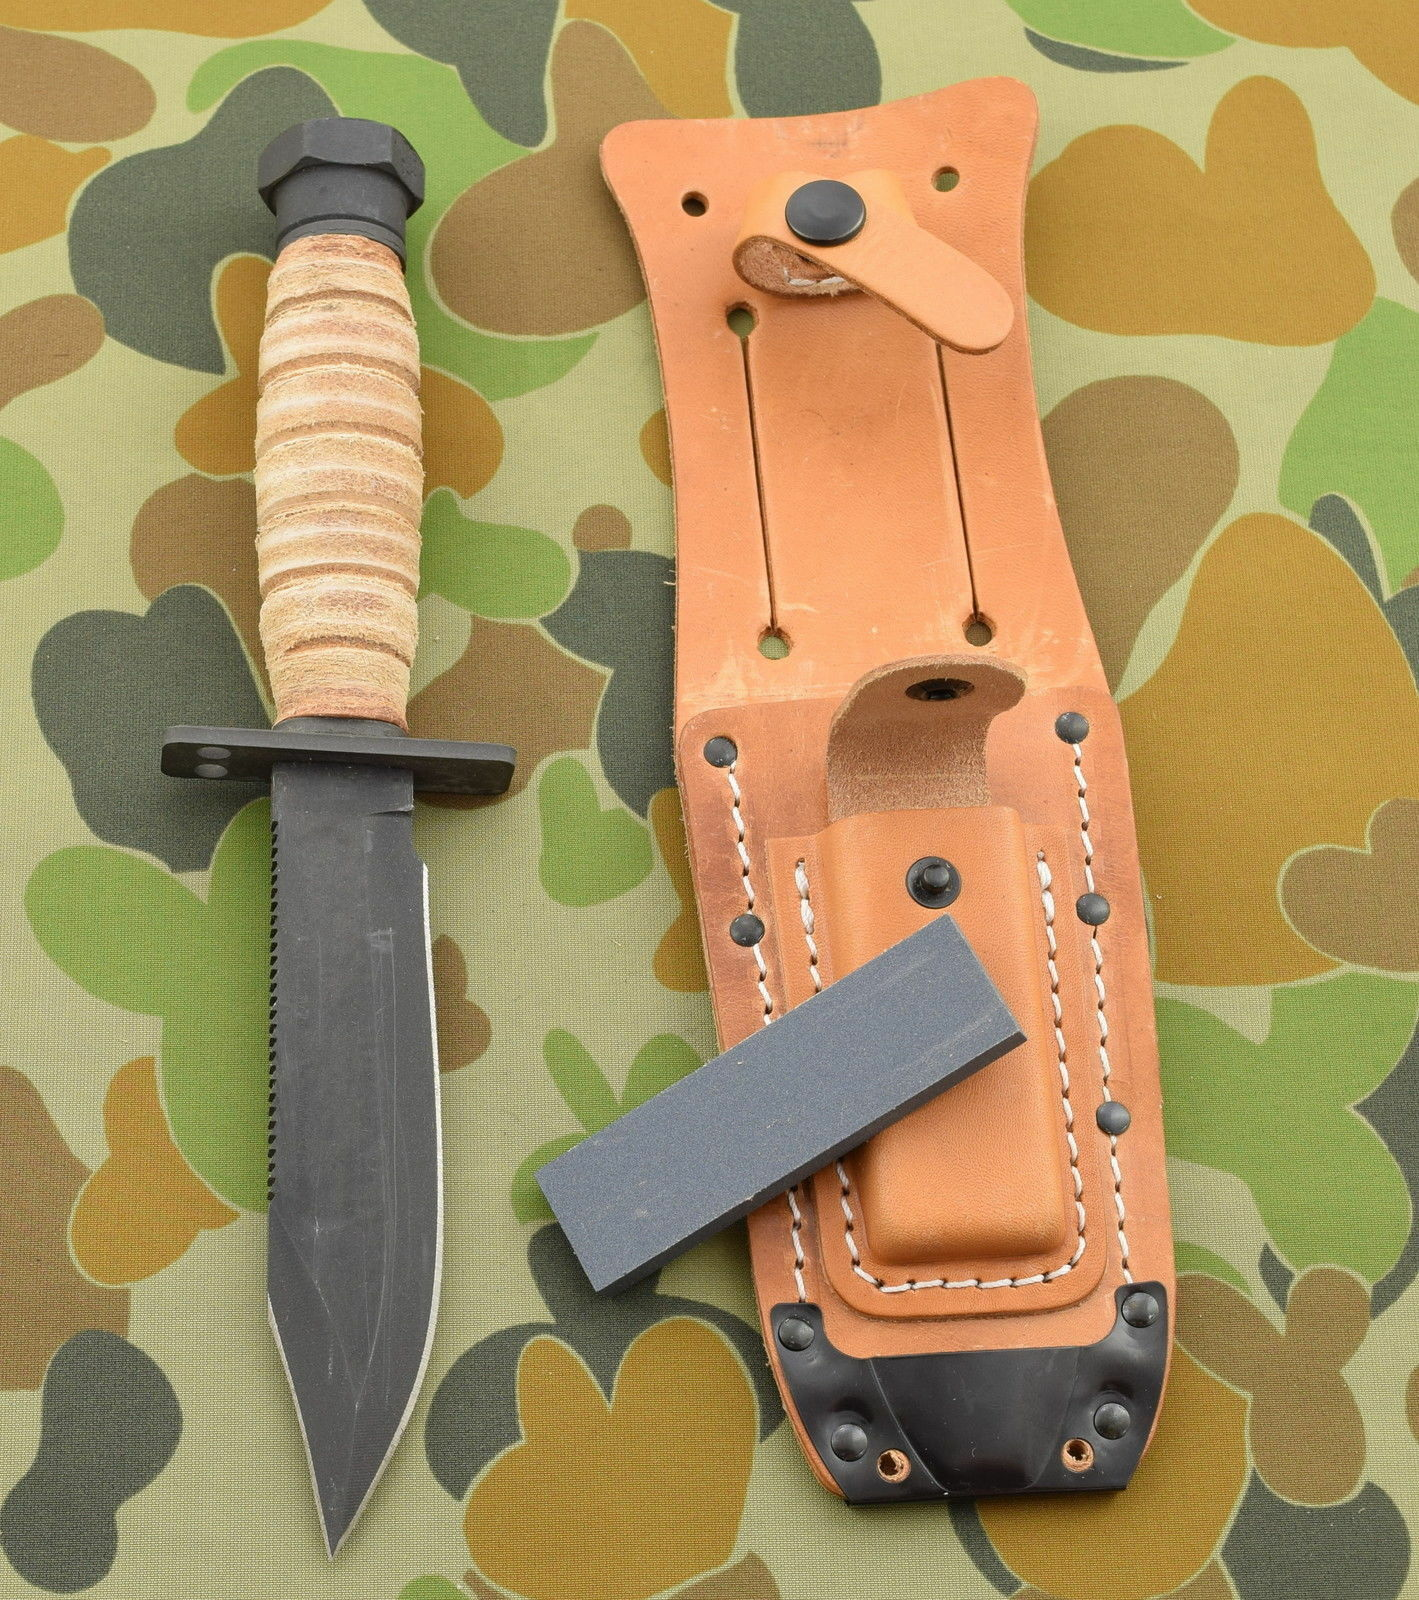 ON499 Ontario Messer Tactical Ontario ON499 Air Force Survival 1095 Carbon Blade Made In USA 81a3c0